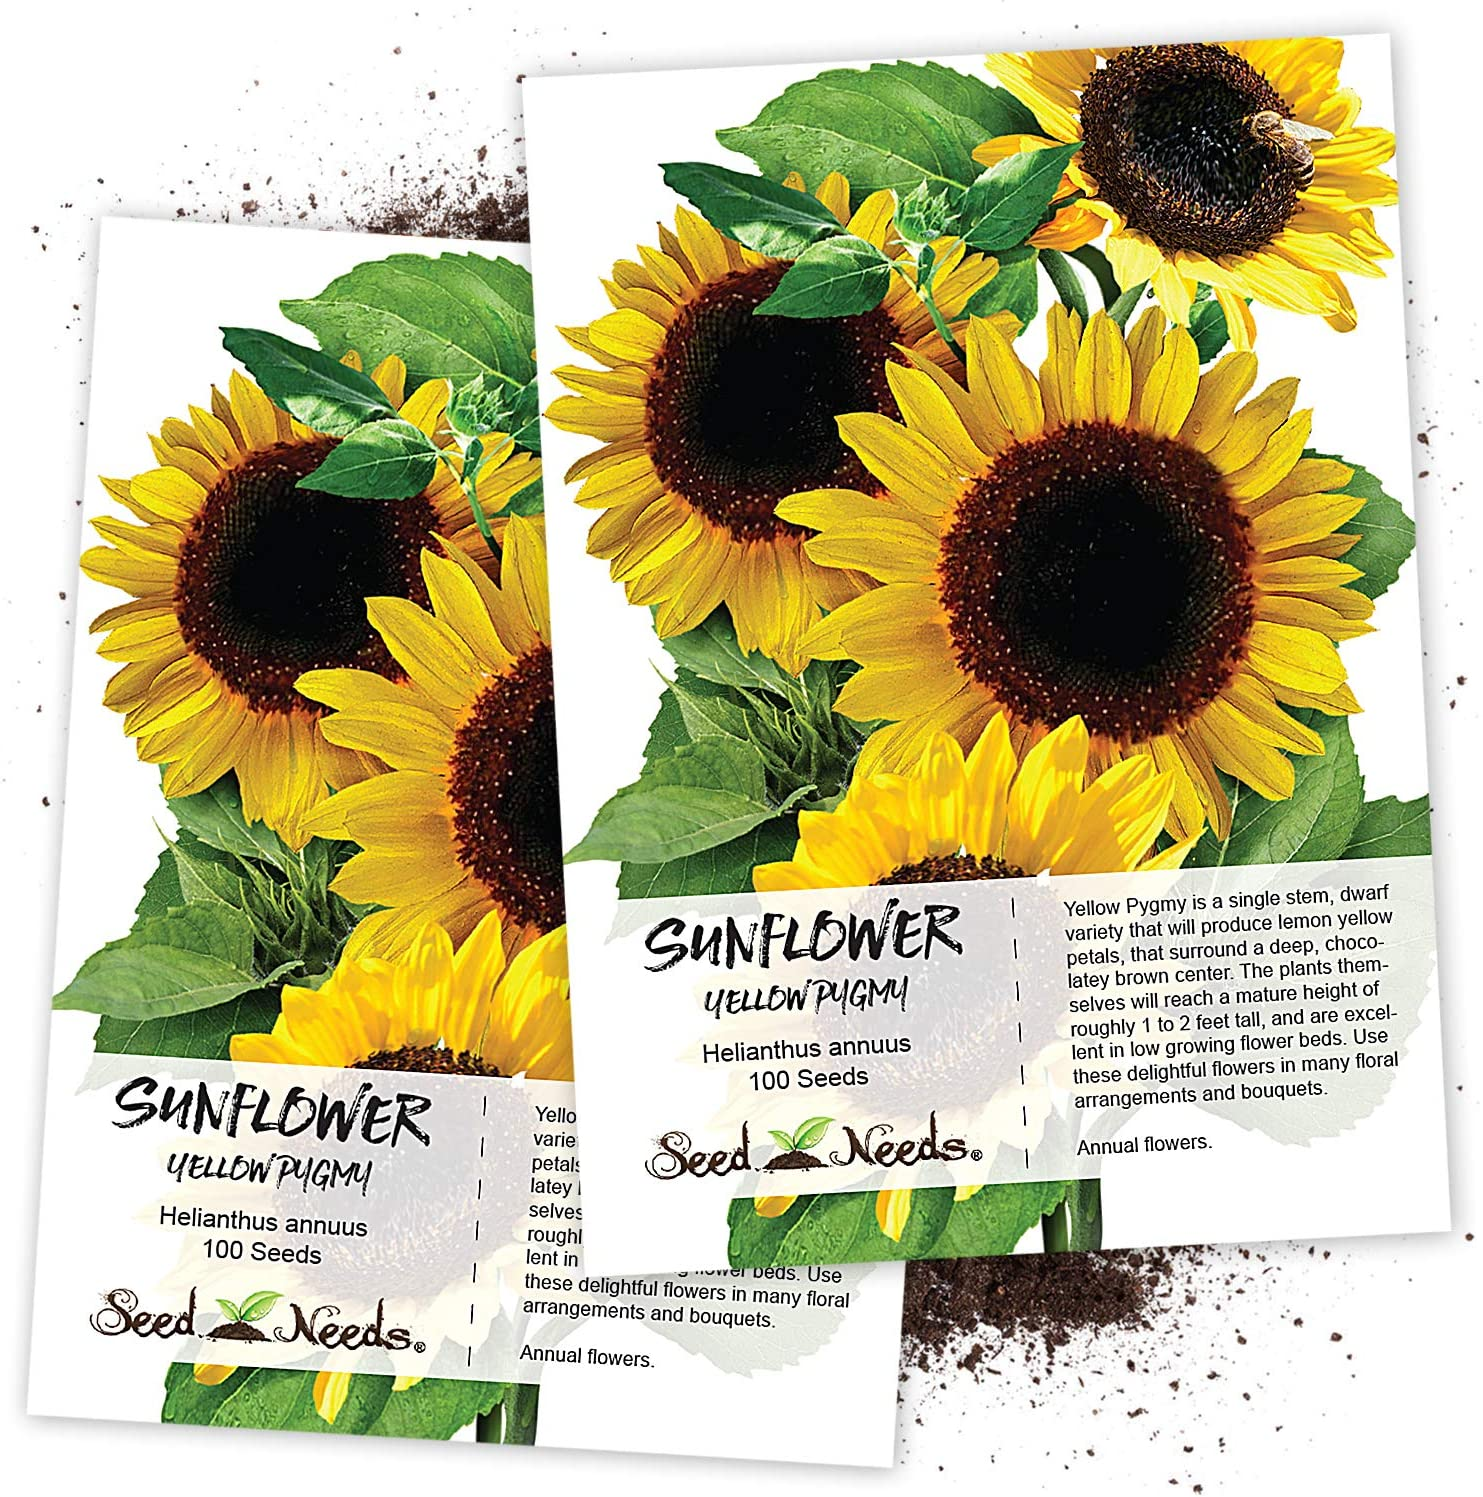 Seed Needs, Yellow Pygmy Sunflower (Helianthus annuus) Twin Pack of 100 Seeds Each